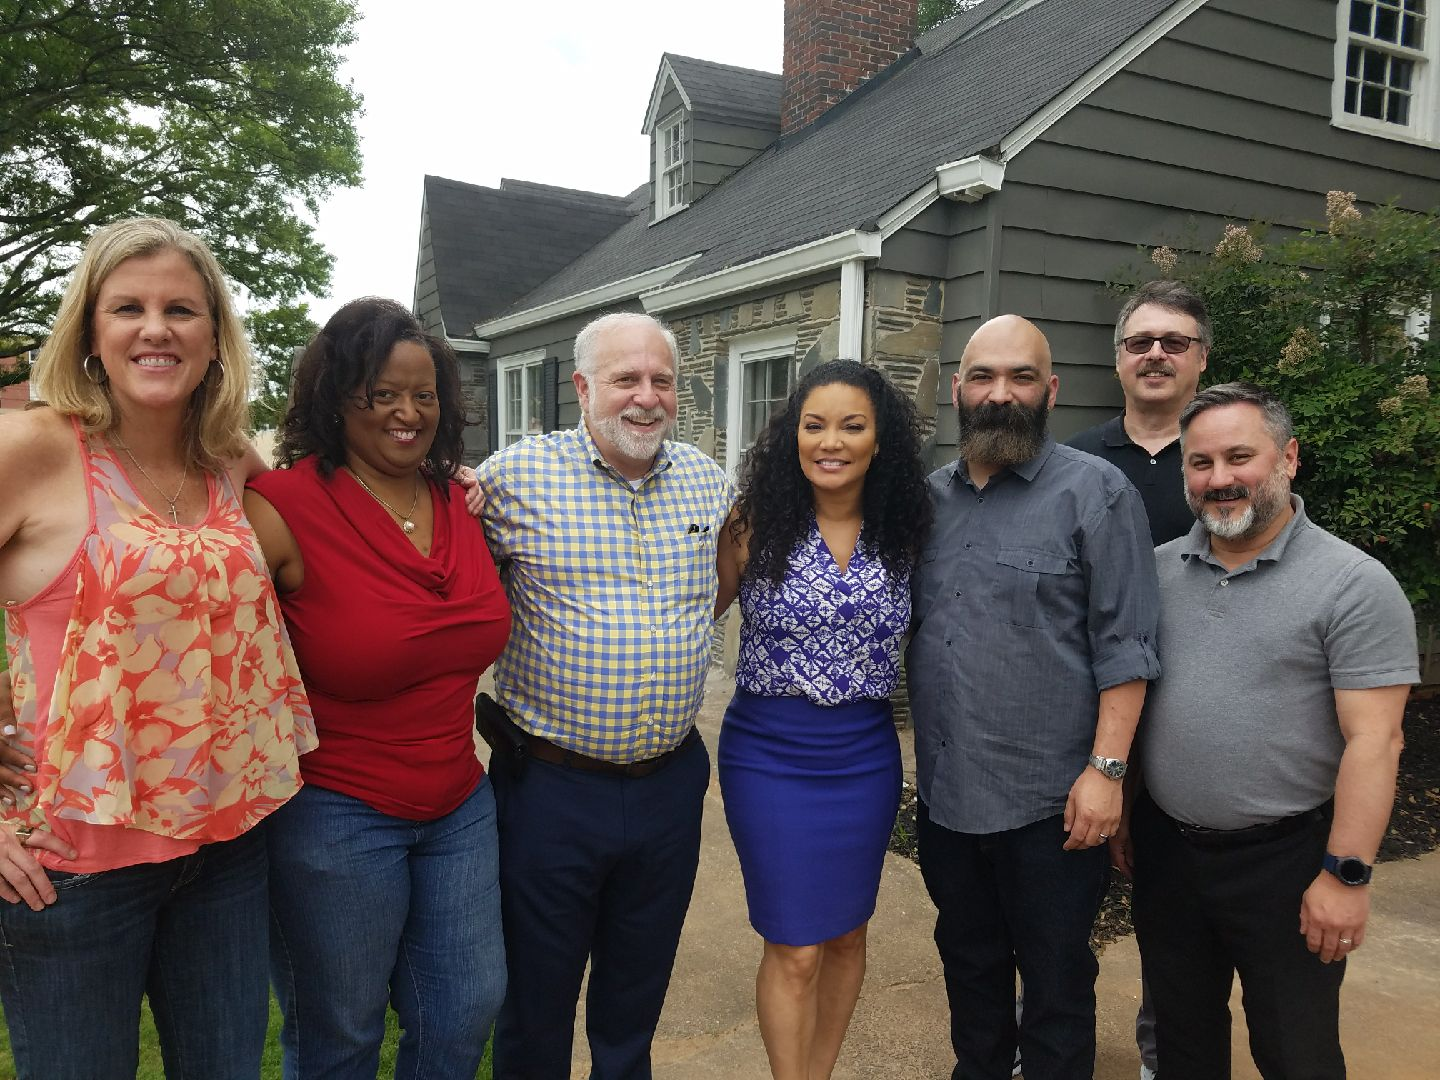 Realtors and Broker make it on to HGTV television